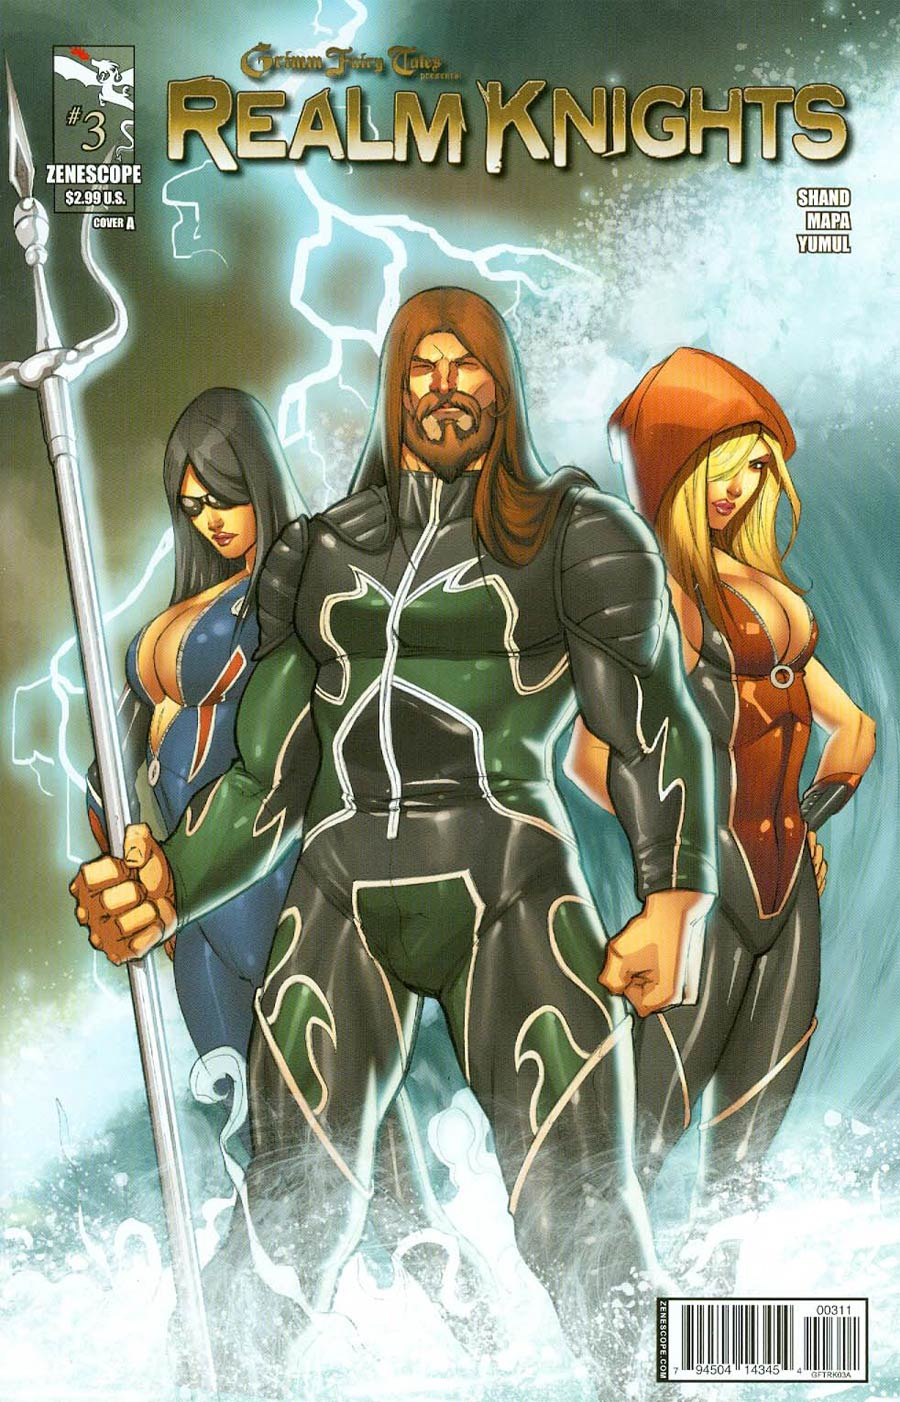 Grimm Fairy Tales Presents Realm Knights #3 Cover A Pasquale Qualano